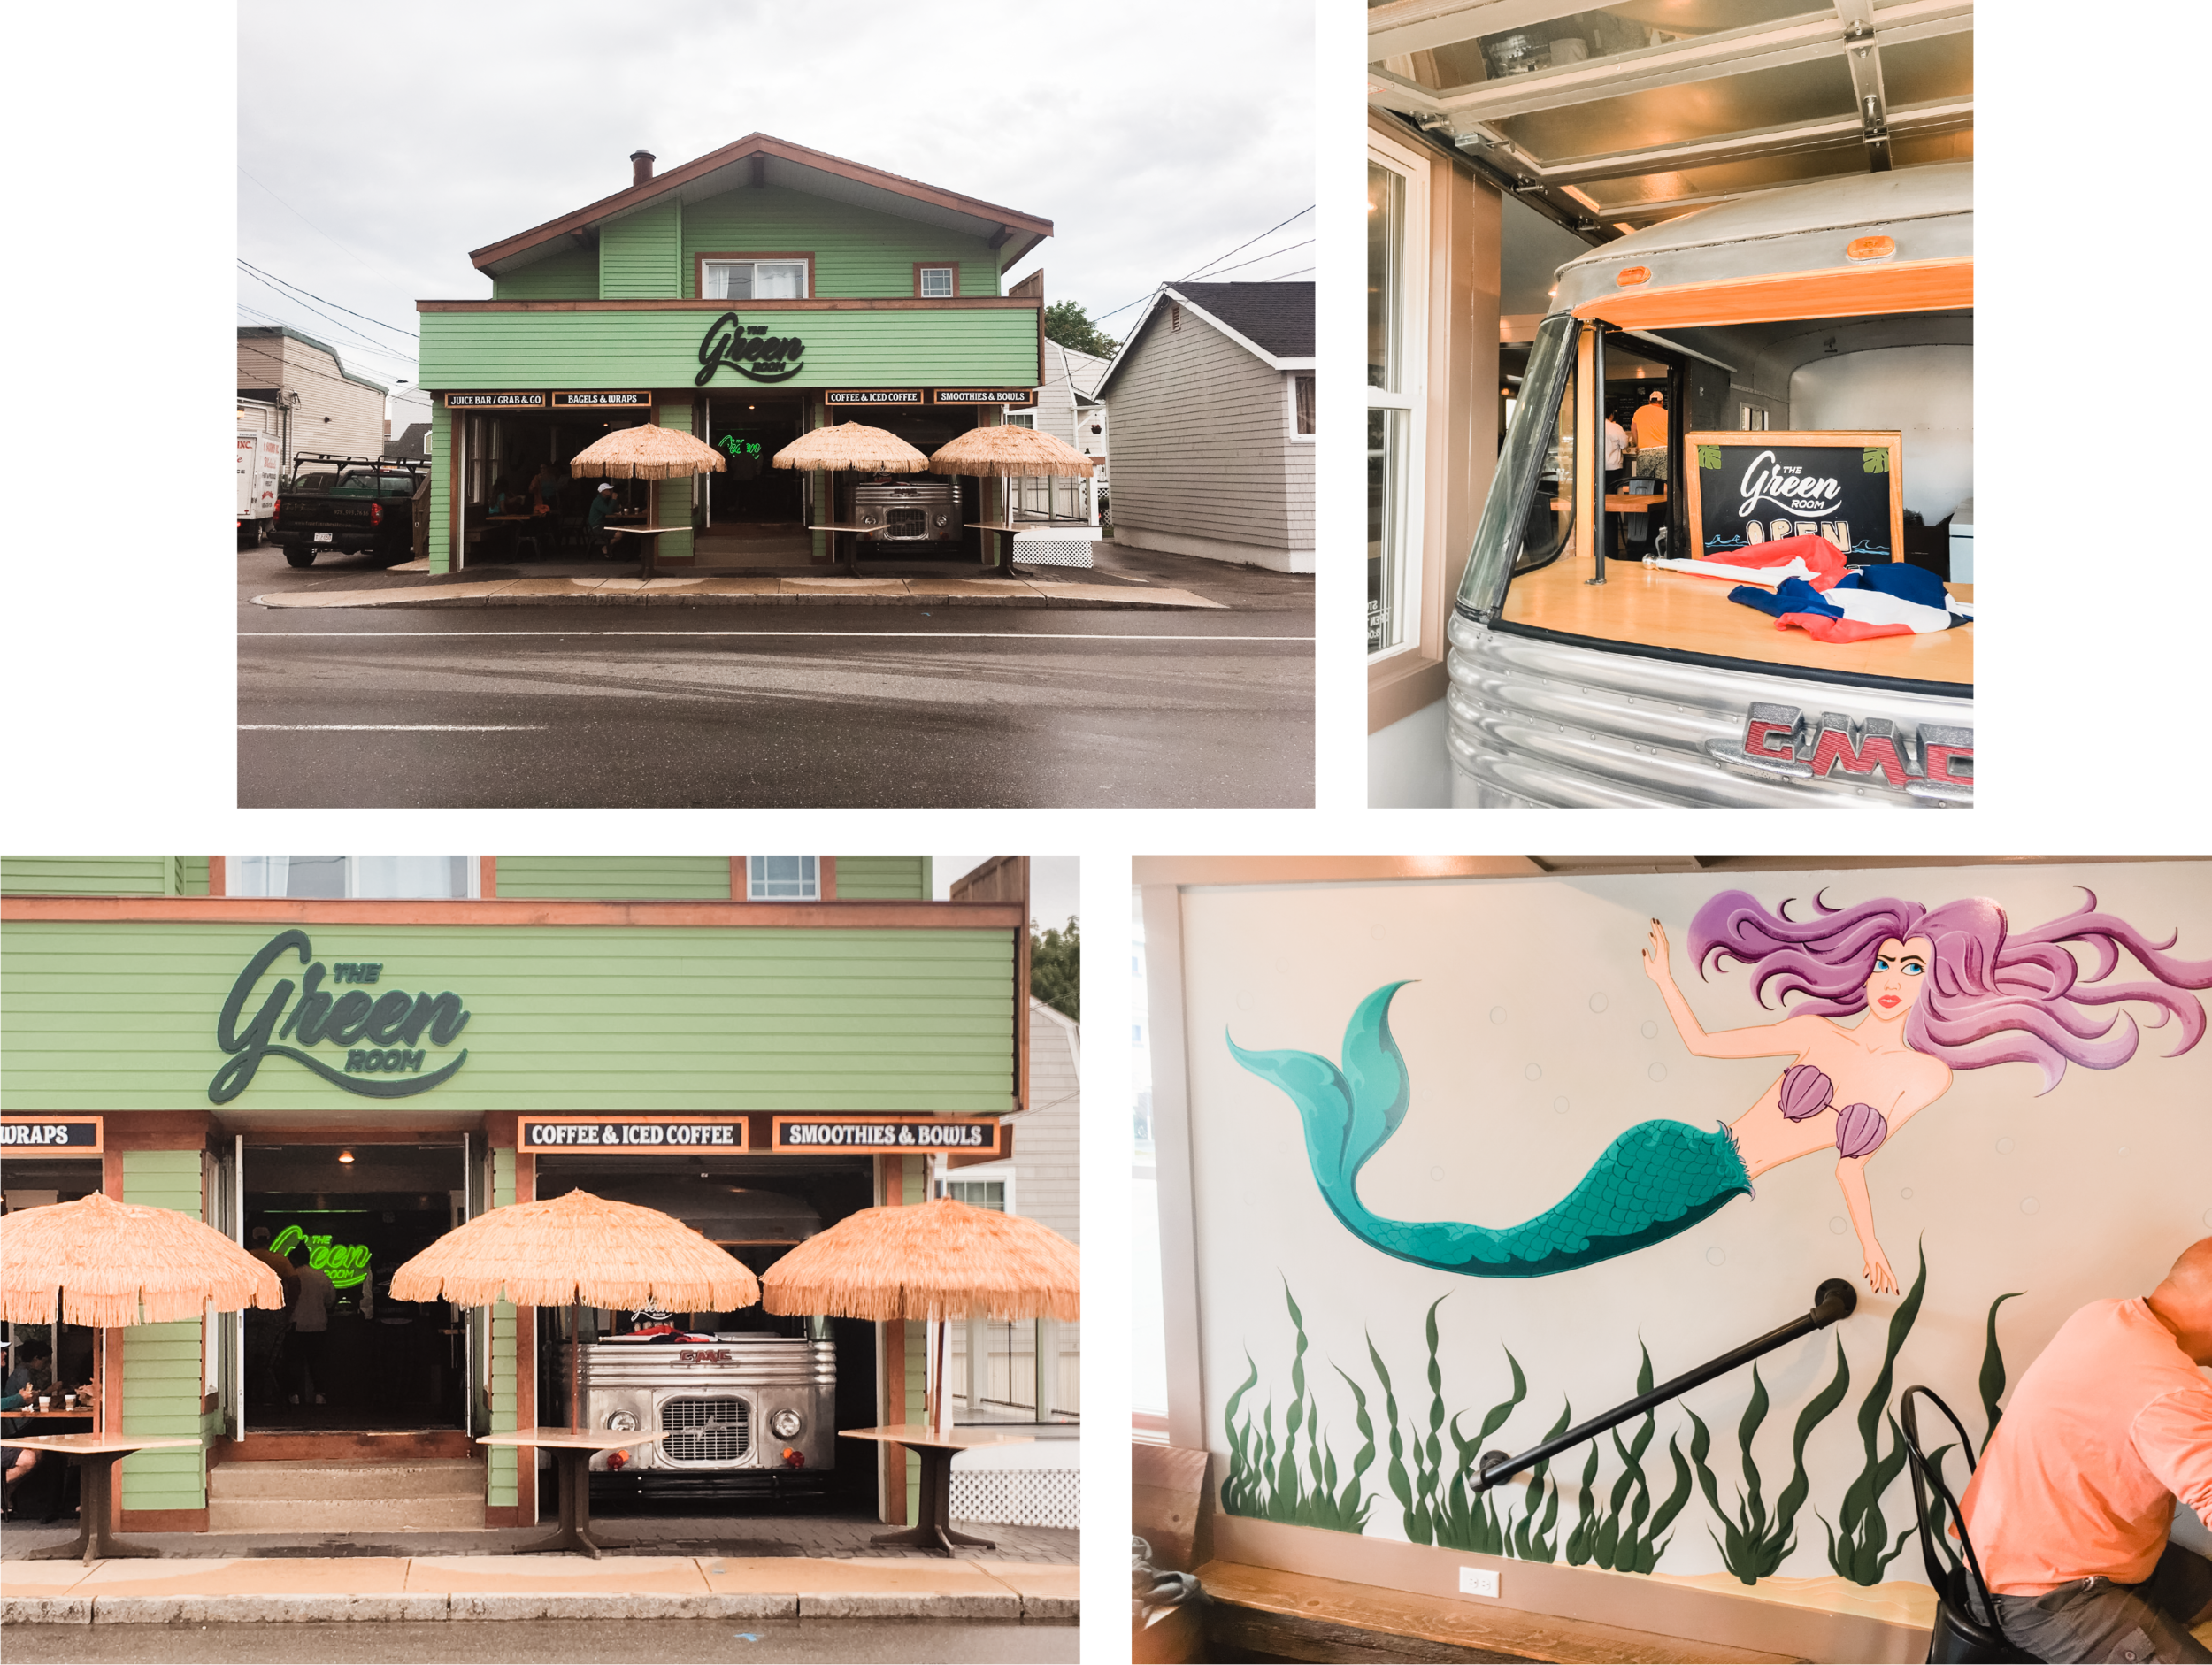 Found this sweet restaurant 💚 on a recent trip to Hampton Beach, NH.  They installed two garage doors and parked a bus 🚌 on one side! The other side has seating open to the sidewalk. Such a simple and creative idea. And so eye 👀 catching.  I especially love the annoyed mermaid 🧜🏻♀️ painted on one of the interior walls.